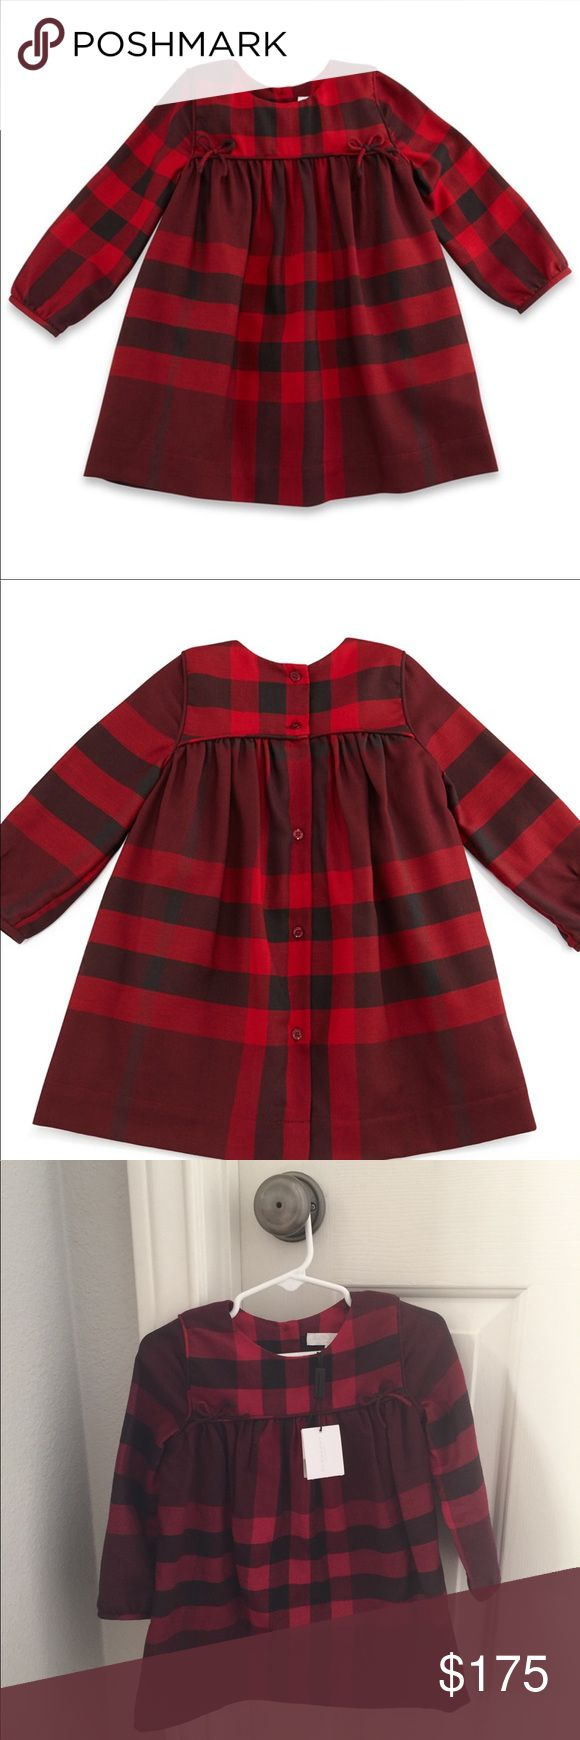 Burberry Children's dress Burgundy Thea checked dress is festive, brand-new and ideal for the holiday season. Perfect for Santa and/or family pictures, Christmas parties and works for the rest of the year, too. Sophisticated and sweet. Smocked empire waist with bow detail and button-up back. Burberry Dresses Formal